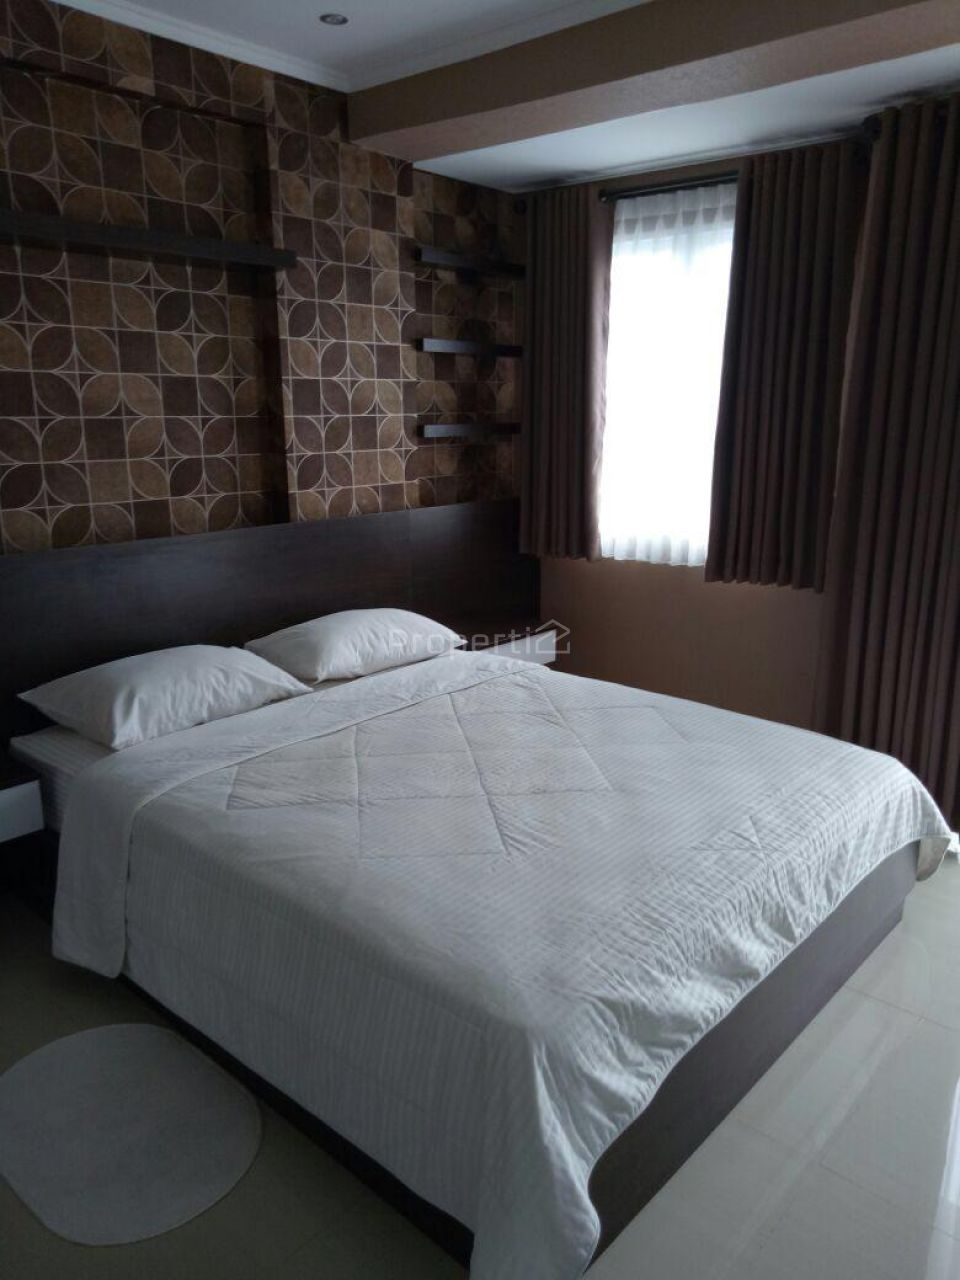 1 Br Unit 10th Floor at Tower Topaz, Gateway Pasteur Apartment, Kota Bandung